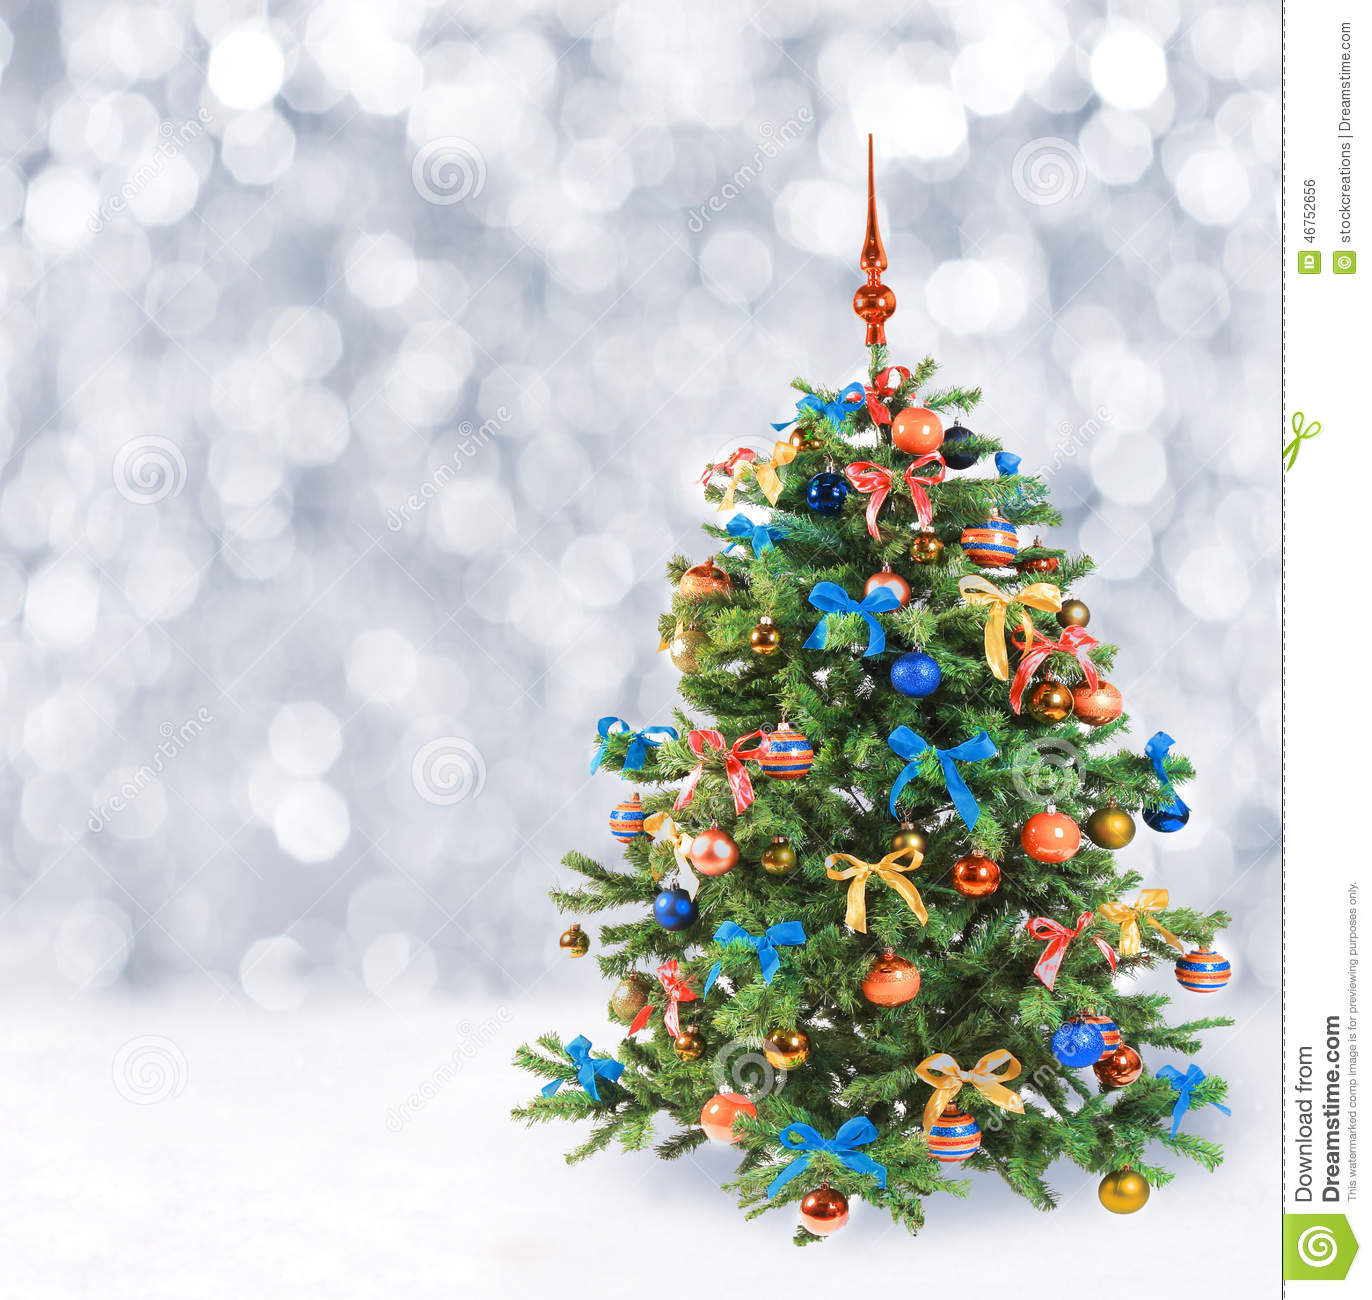 Snow Falling Background Wallpaper Festive Christmas Tree In Winter Snow Stock Photo Image